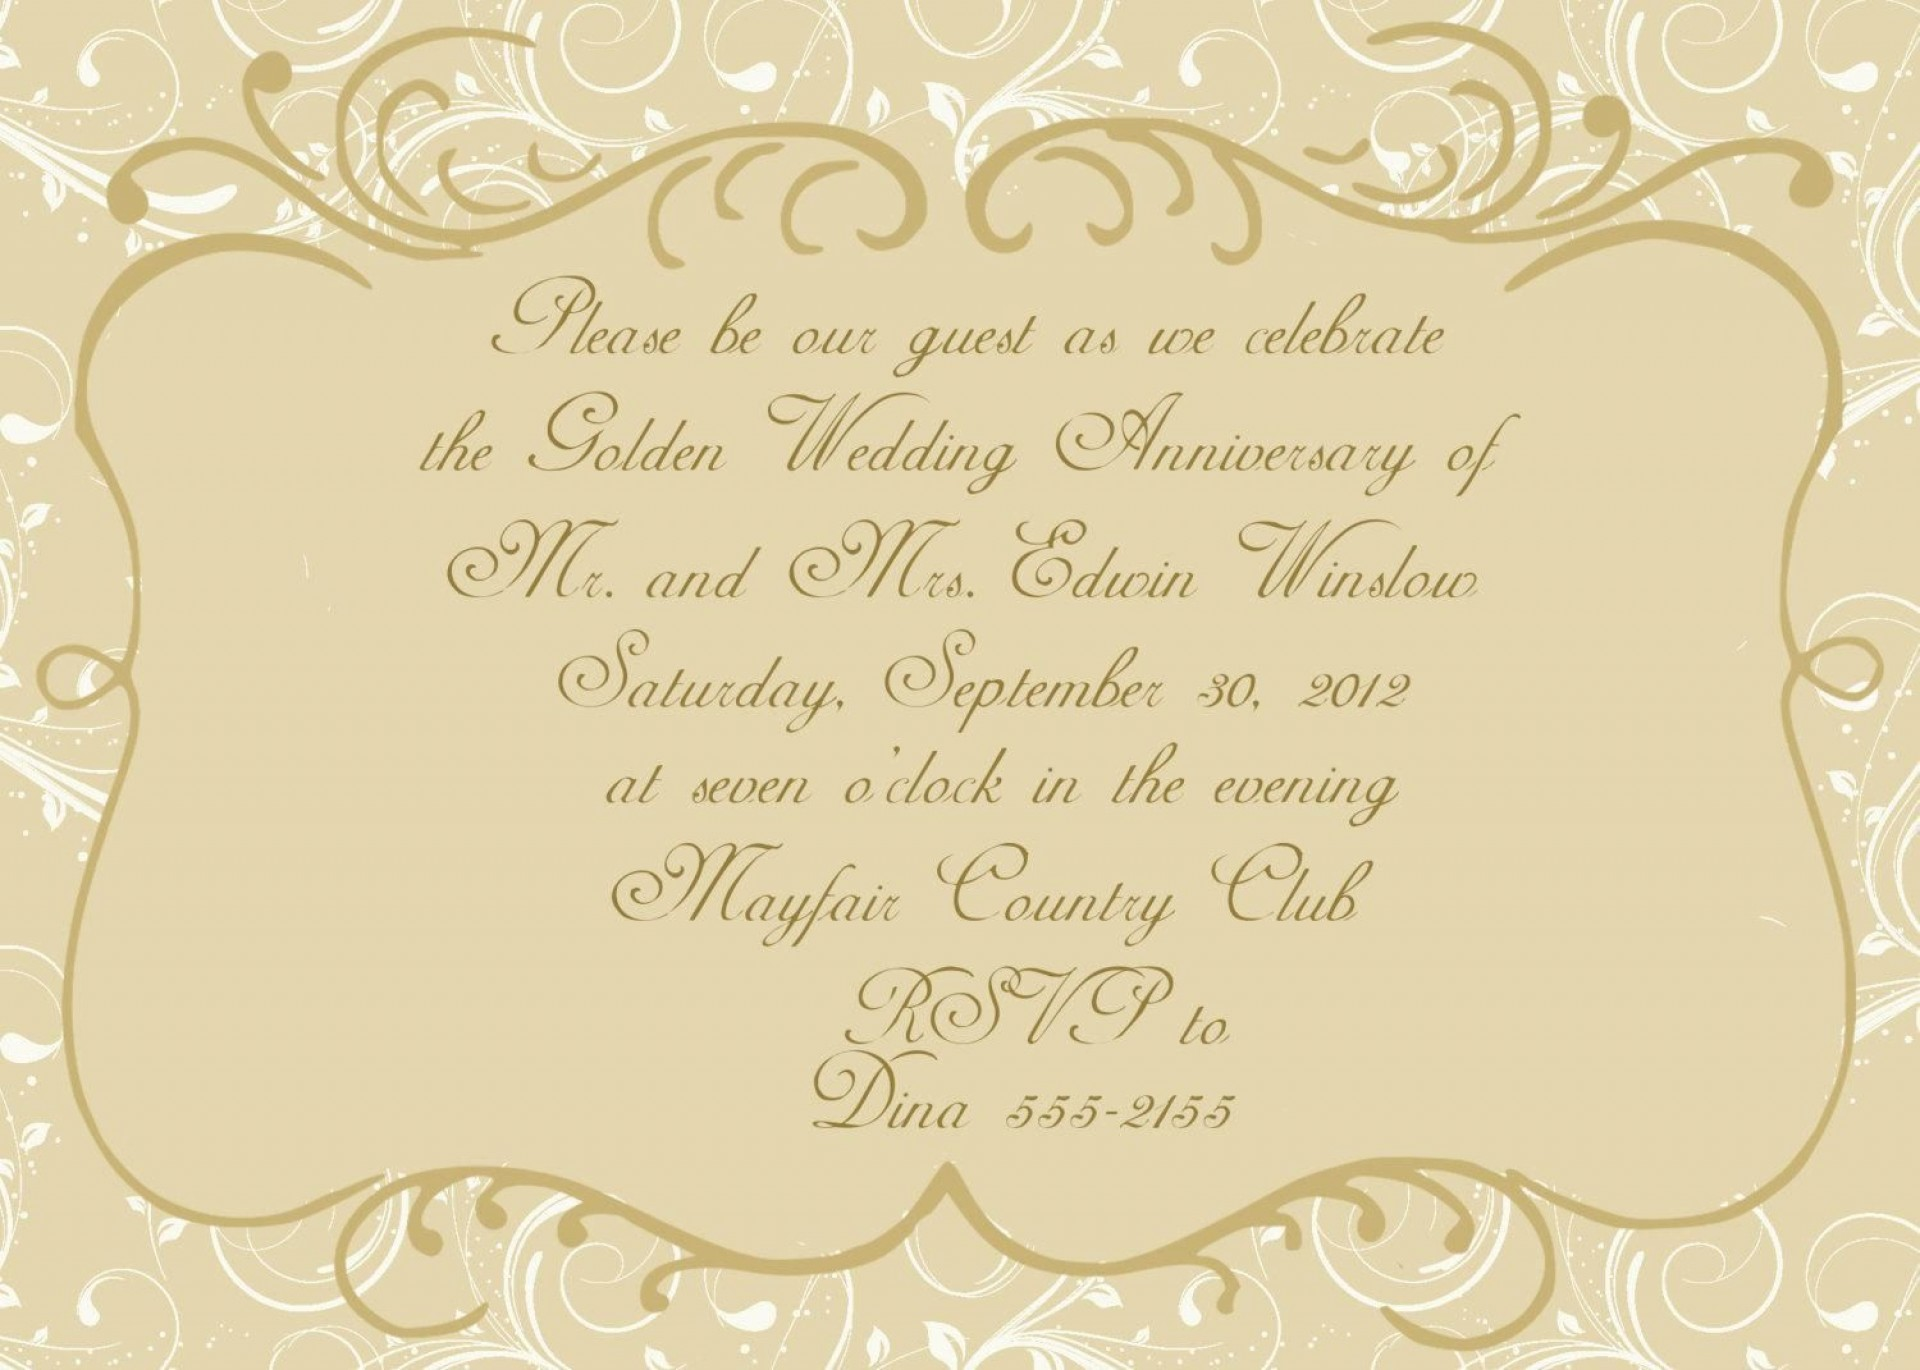 003 Magnificent 50th Wedding Anniversary Invitation Card Template Image  Templates Sample1920